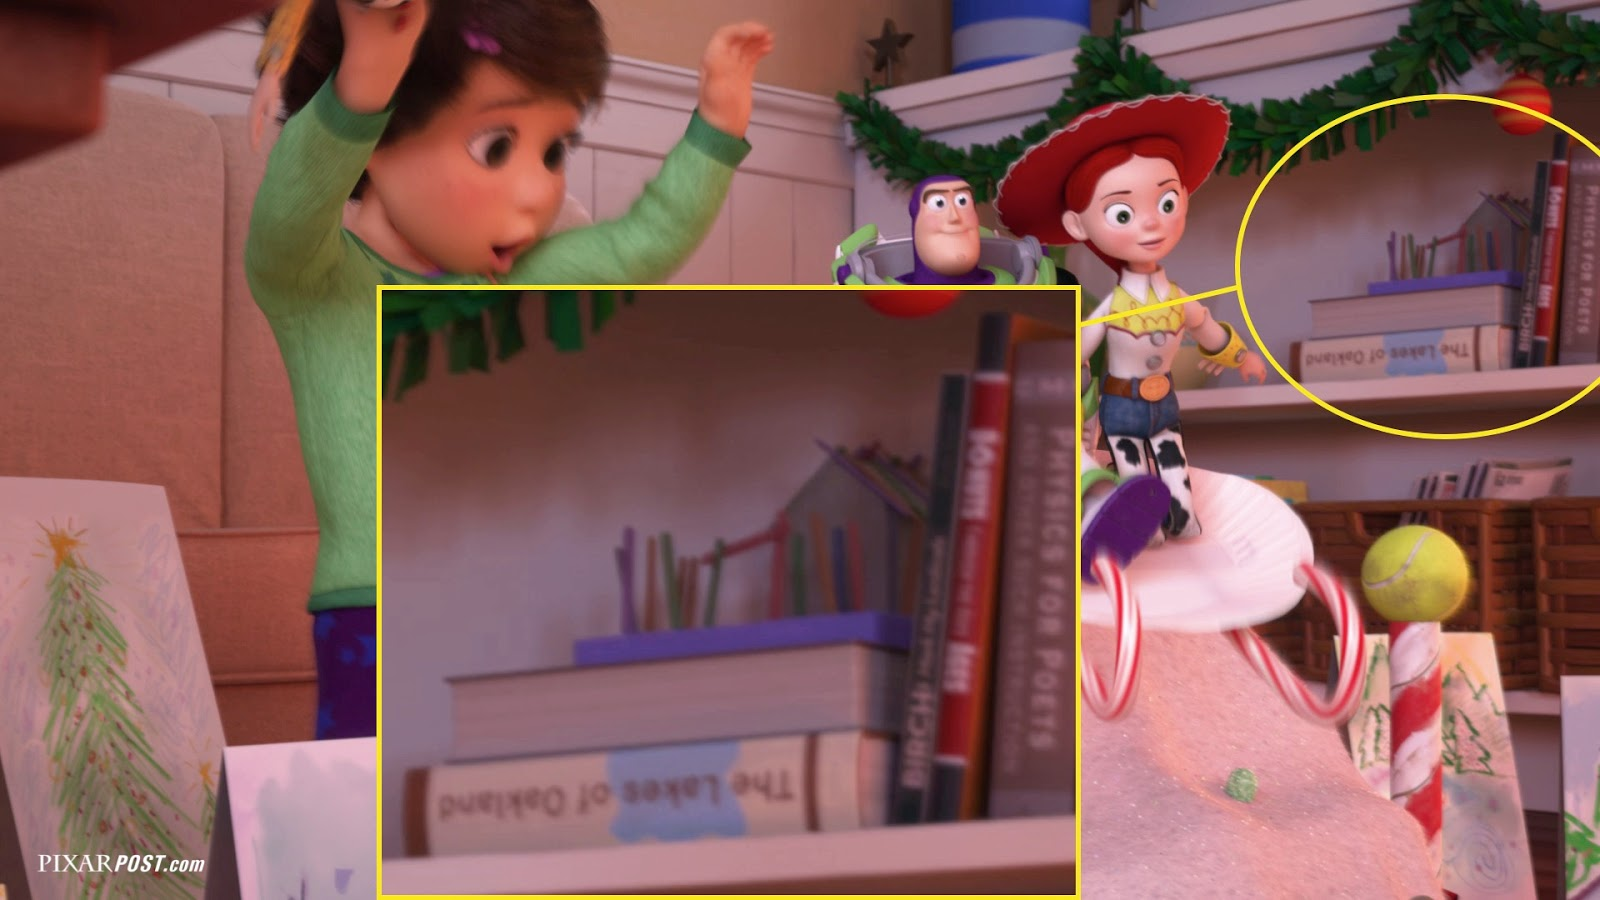 There S Only Room For One Of Us Toy Story